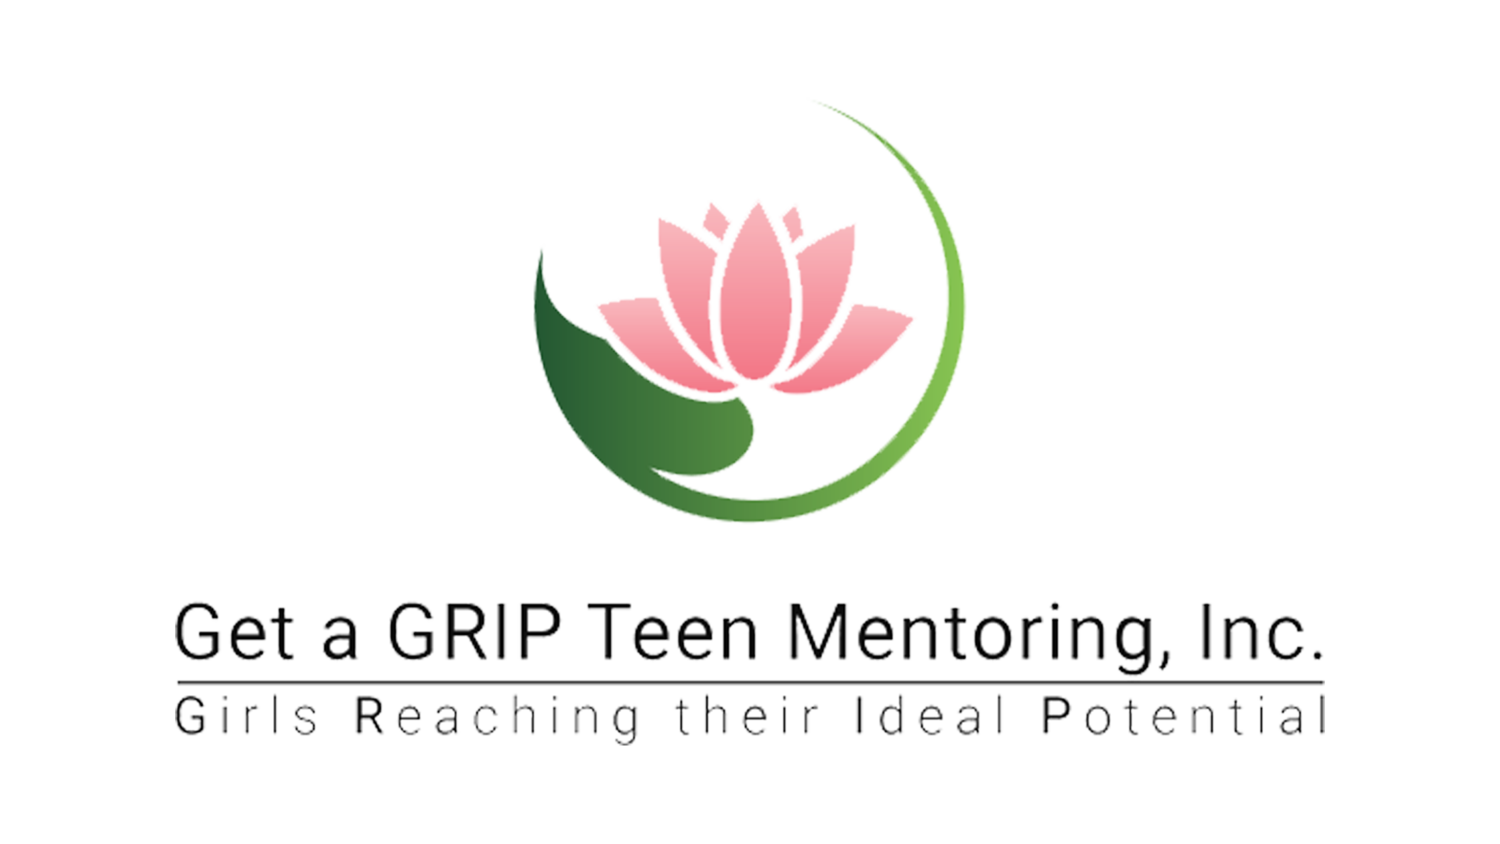 Get A G.R.I.P Inc. | Girls Reaching Their Potential